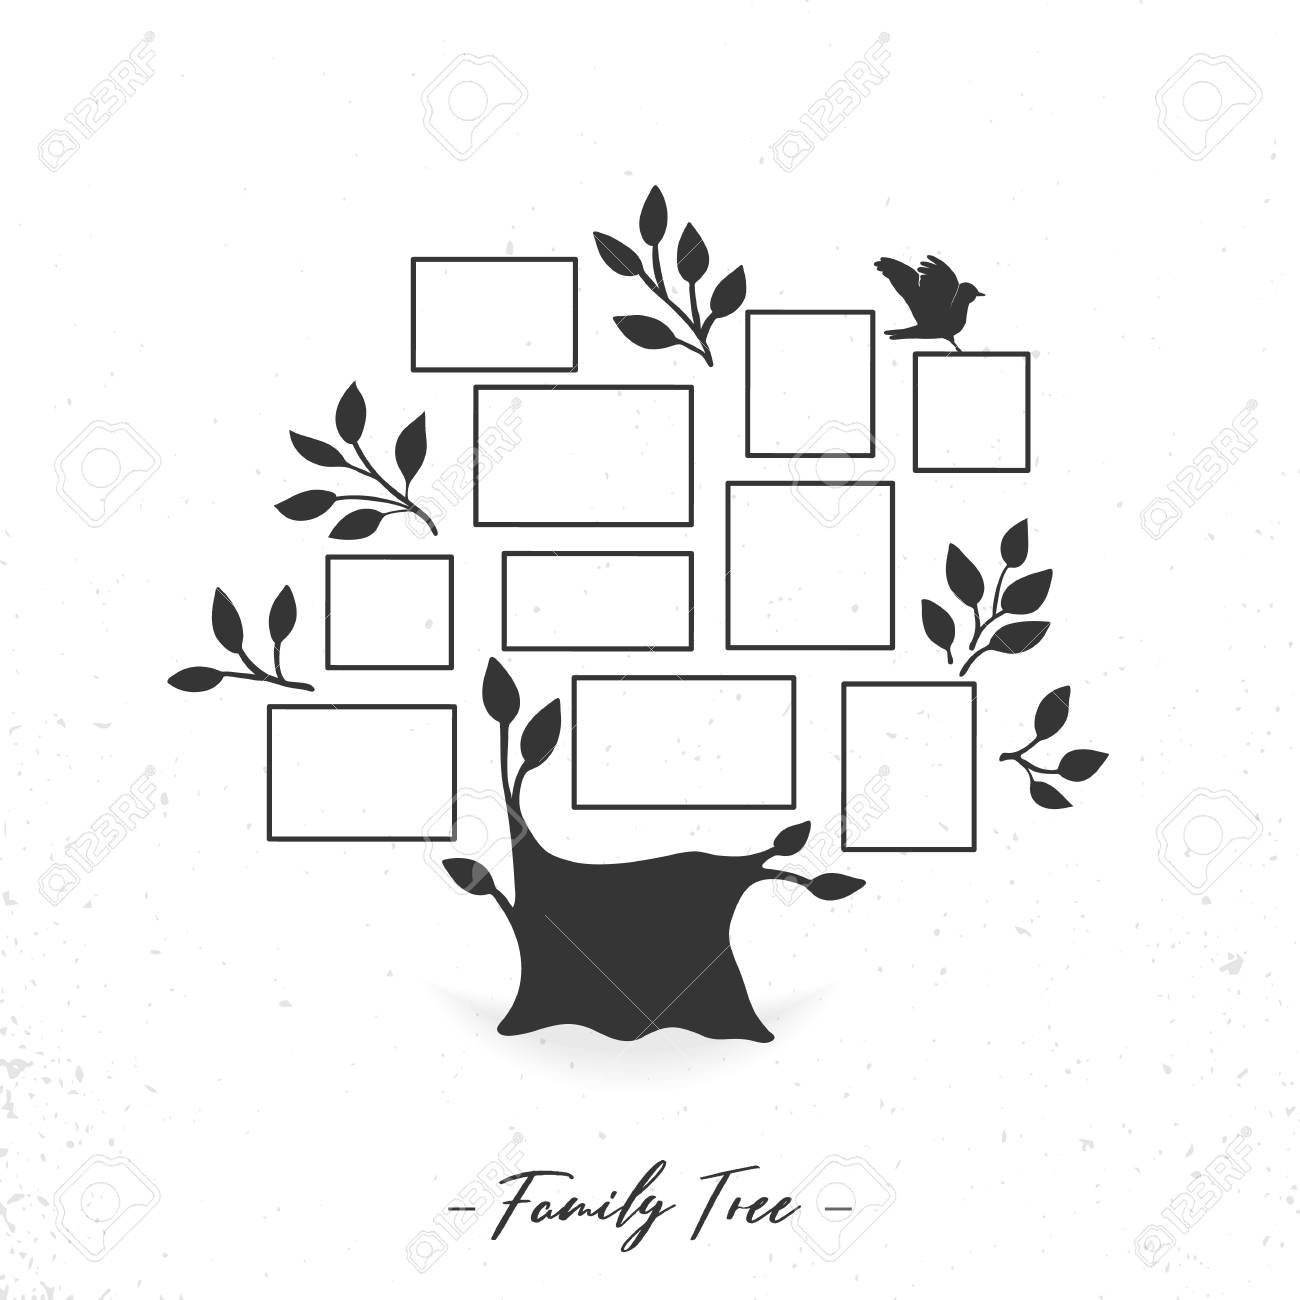 Family Tree With Photo Frames Isolated On A White Background Stock ...